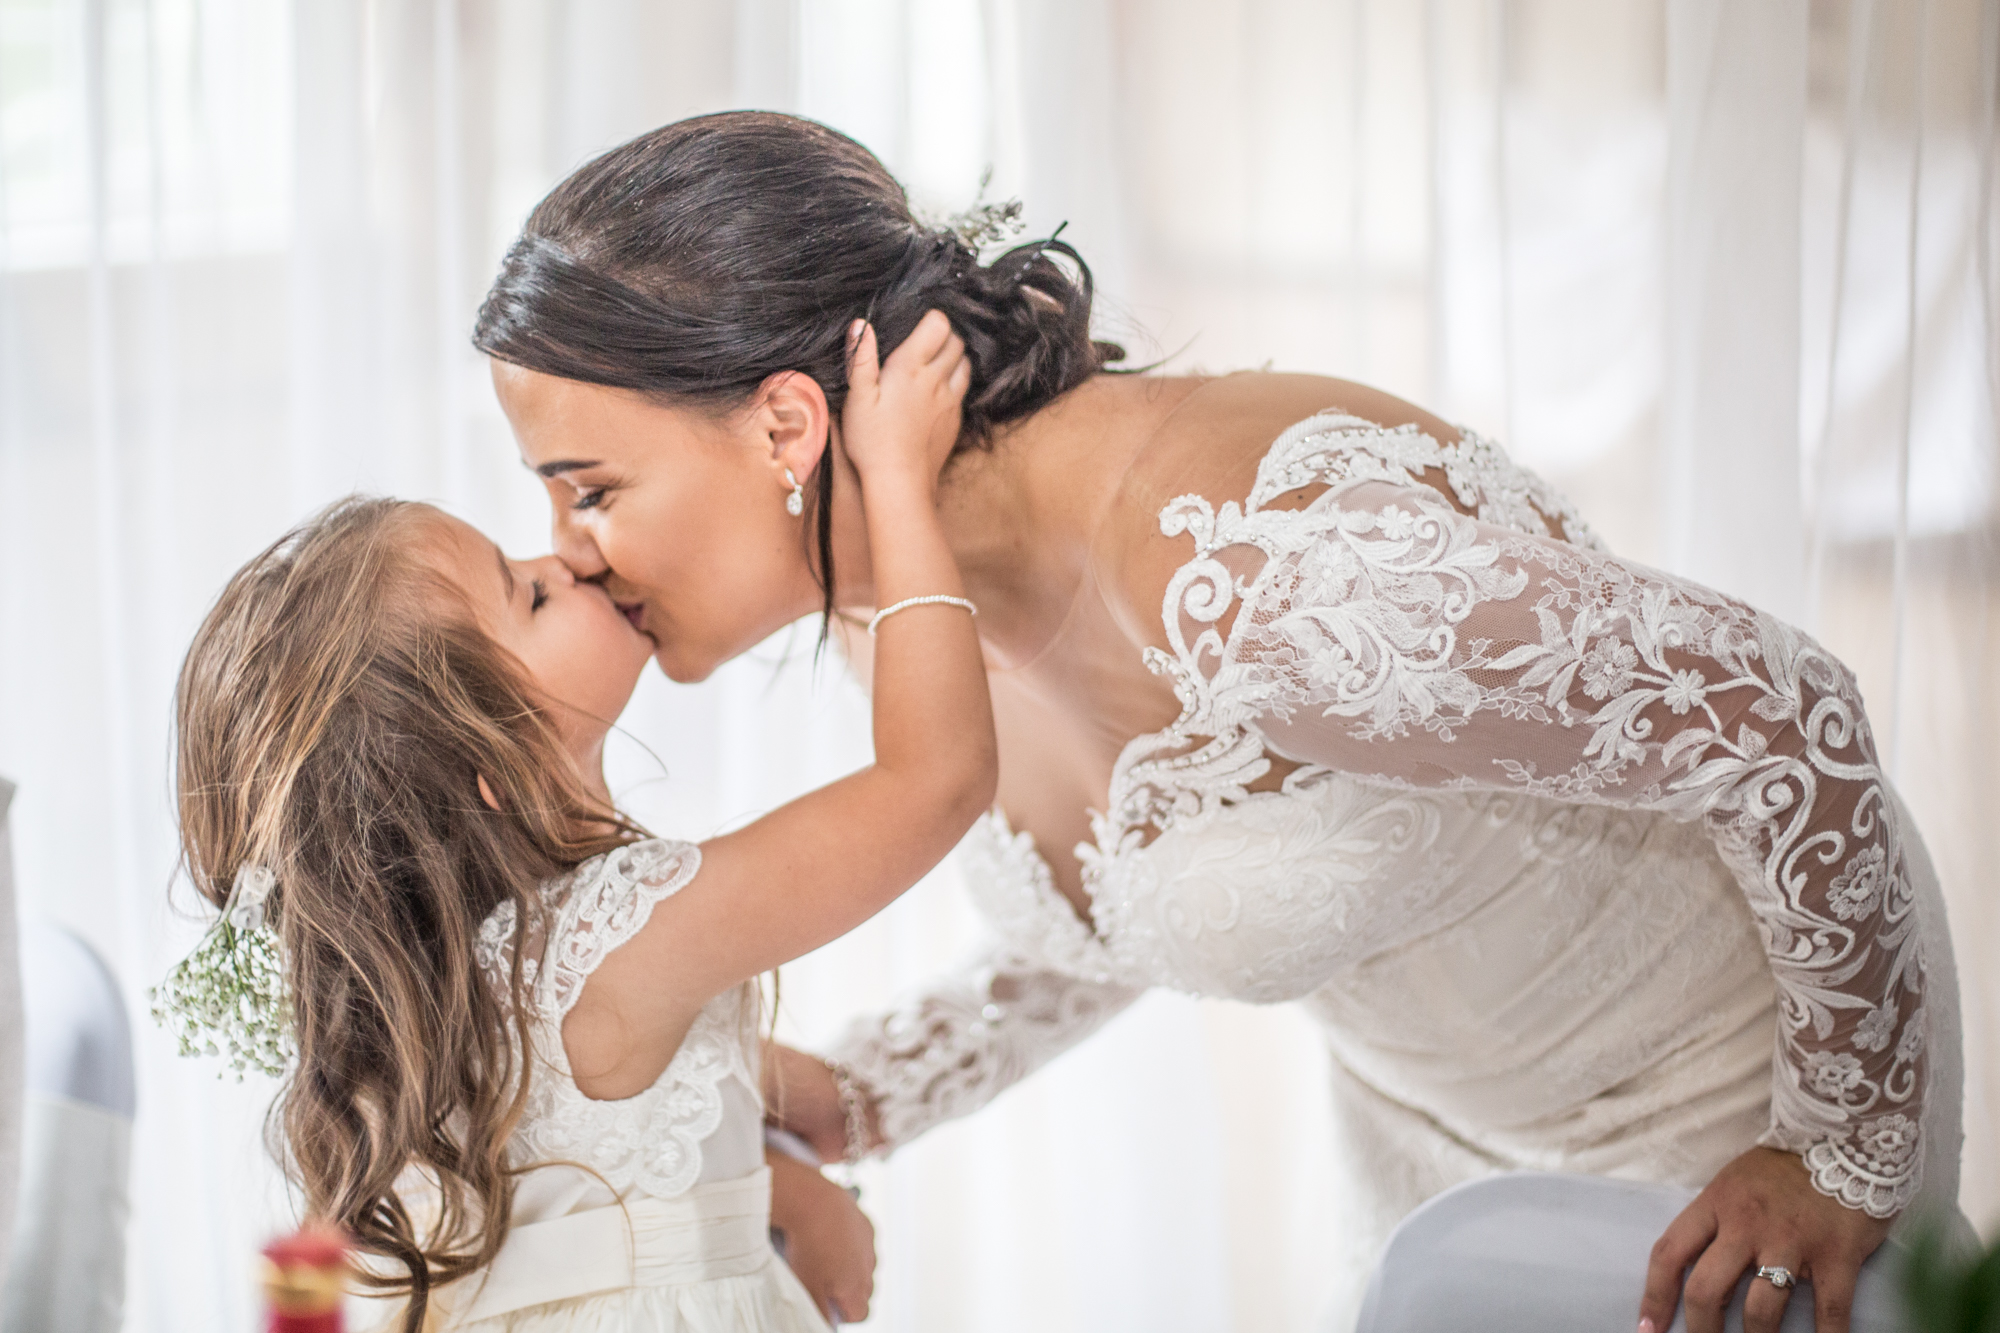 Bride and Daughter Wedding Dress Photography in Swansea